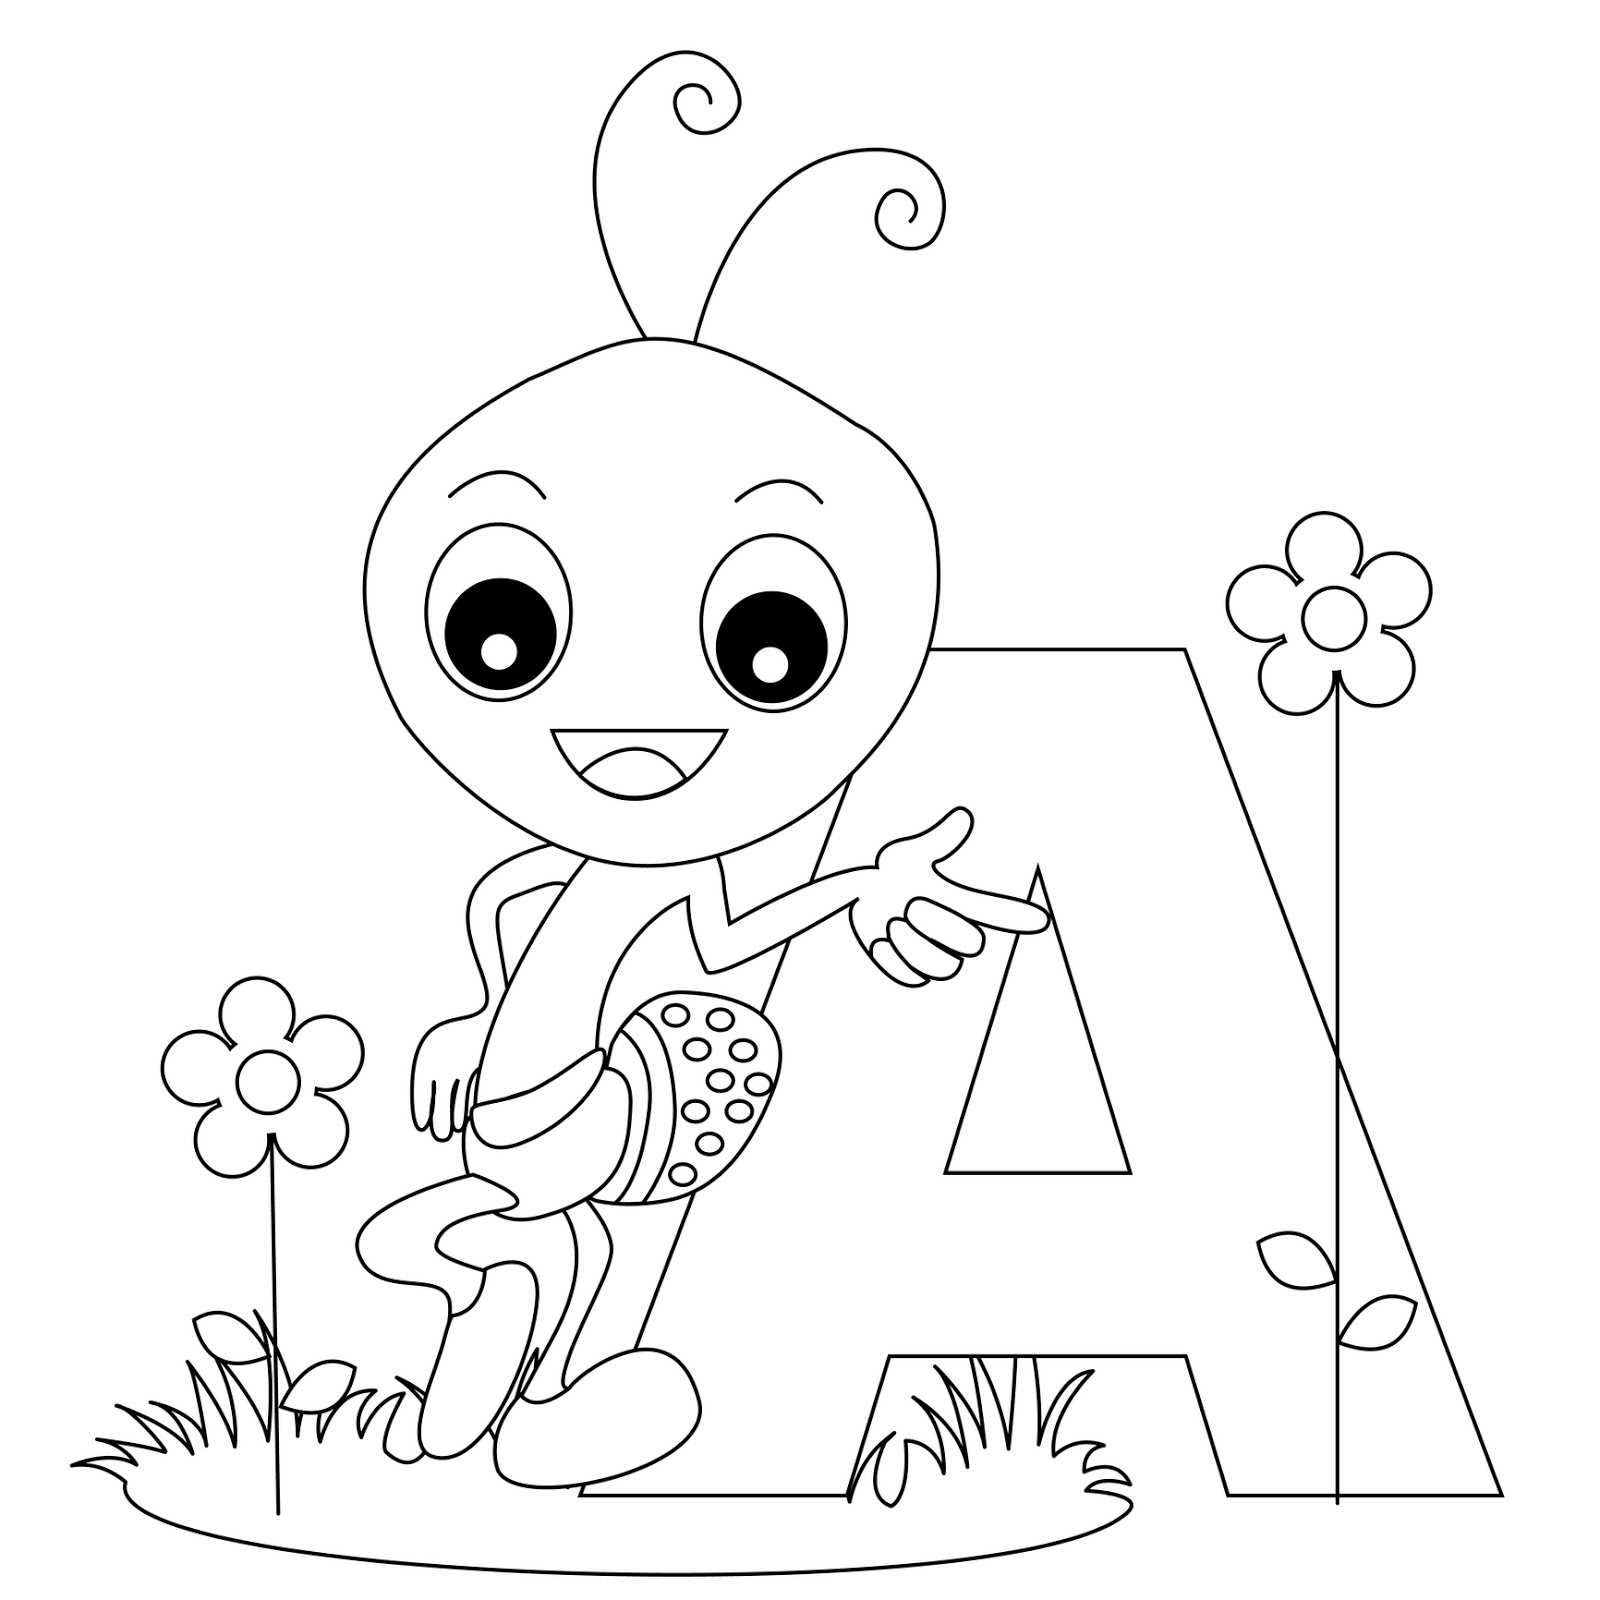 Animal Alphabet Coloring Pages Printable : Alphabet letters o printable letter alphabets